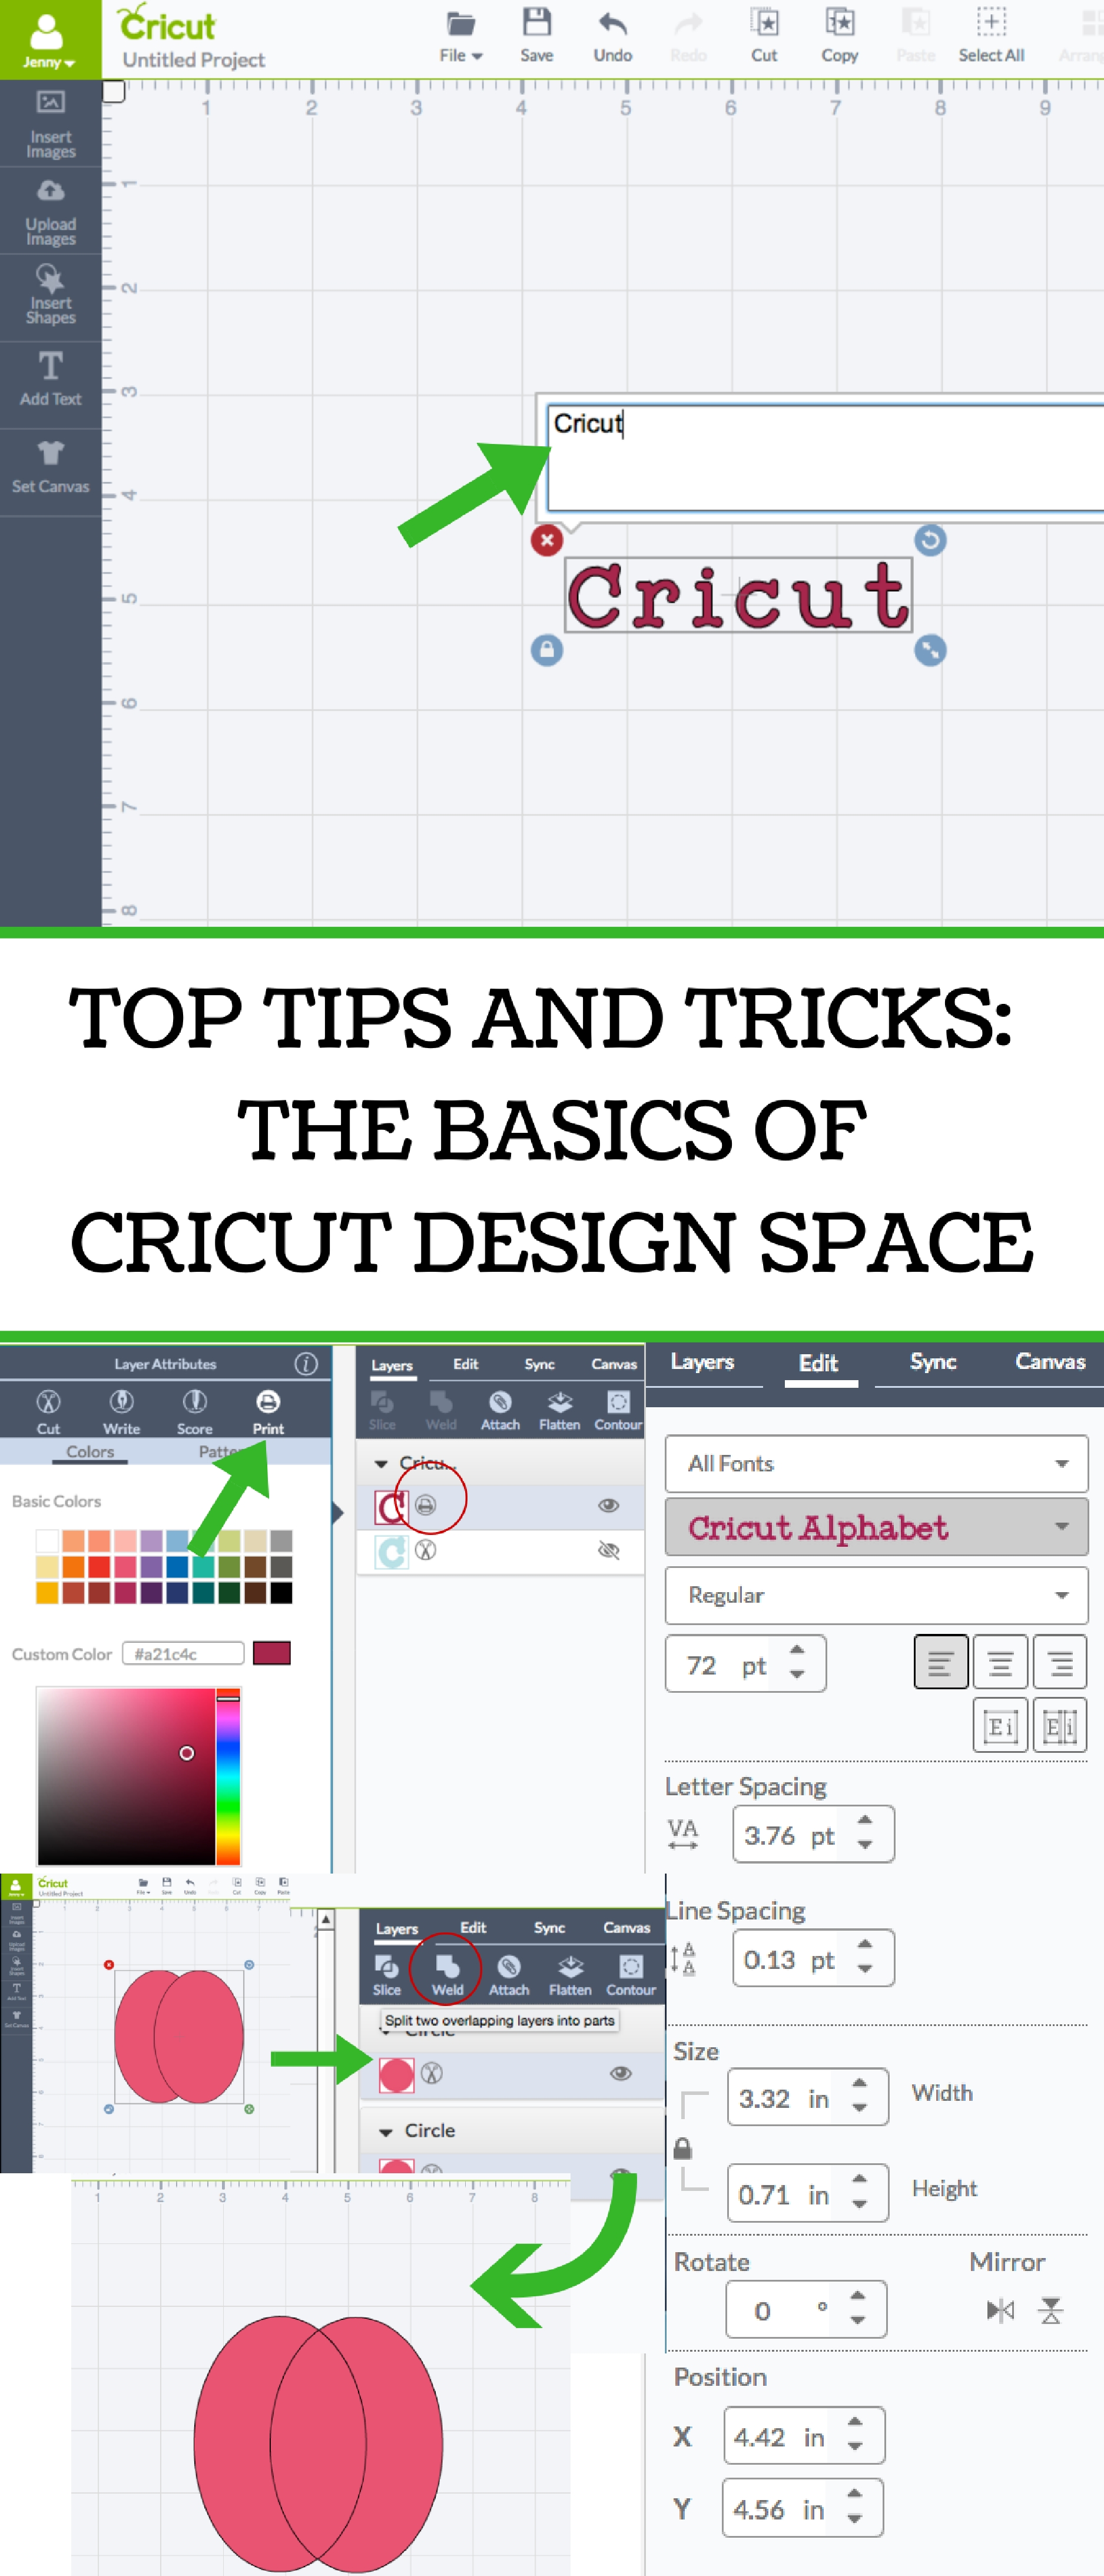 picture relating to Cricut Printable Image Too Large identify Best Rules AND Secrets: THE Principles OF CRICUT Structure Location